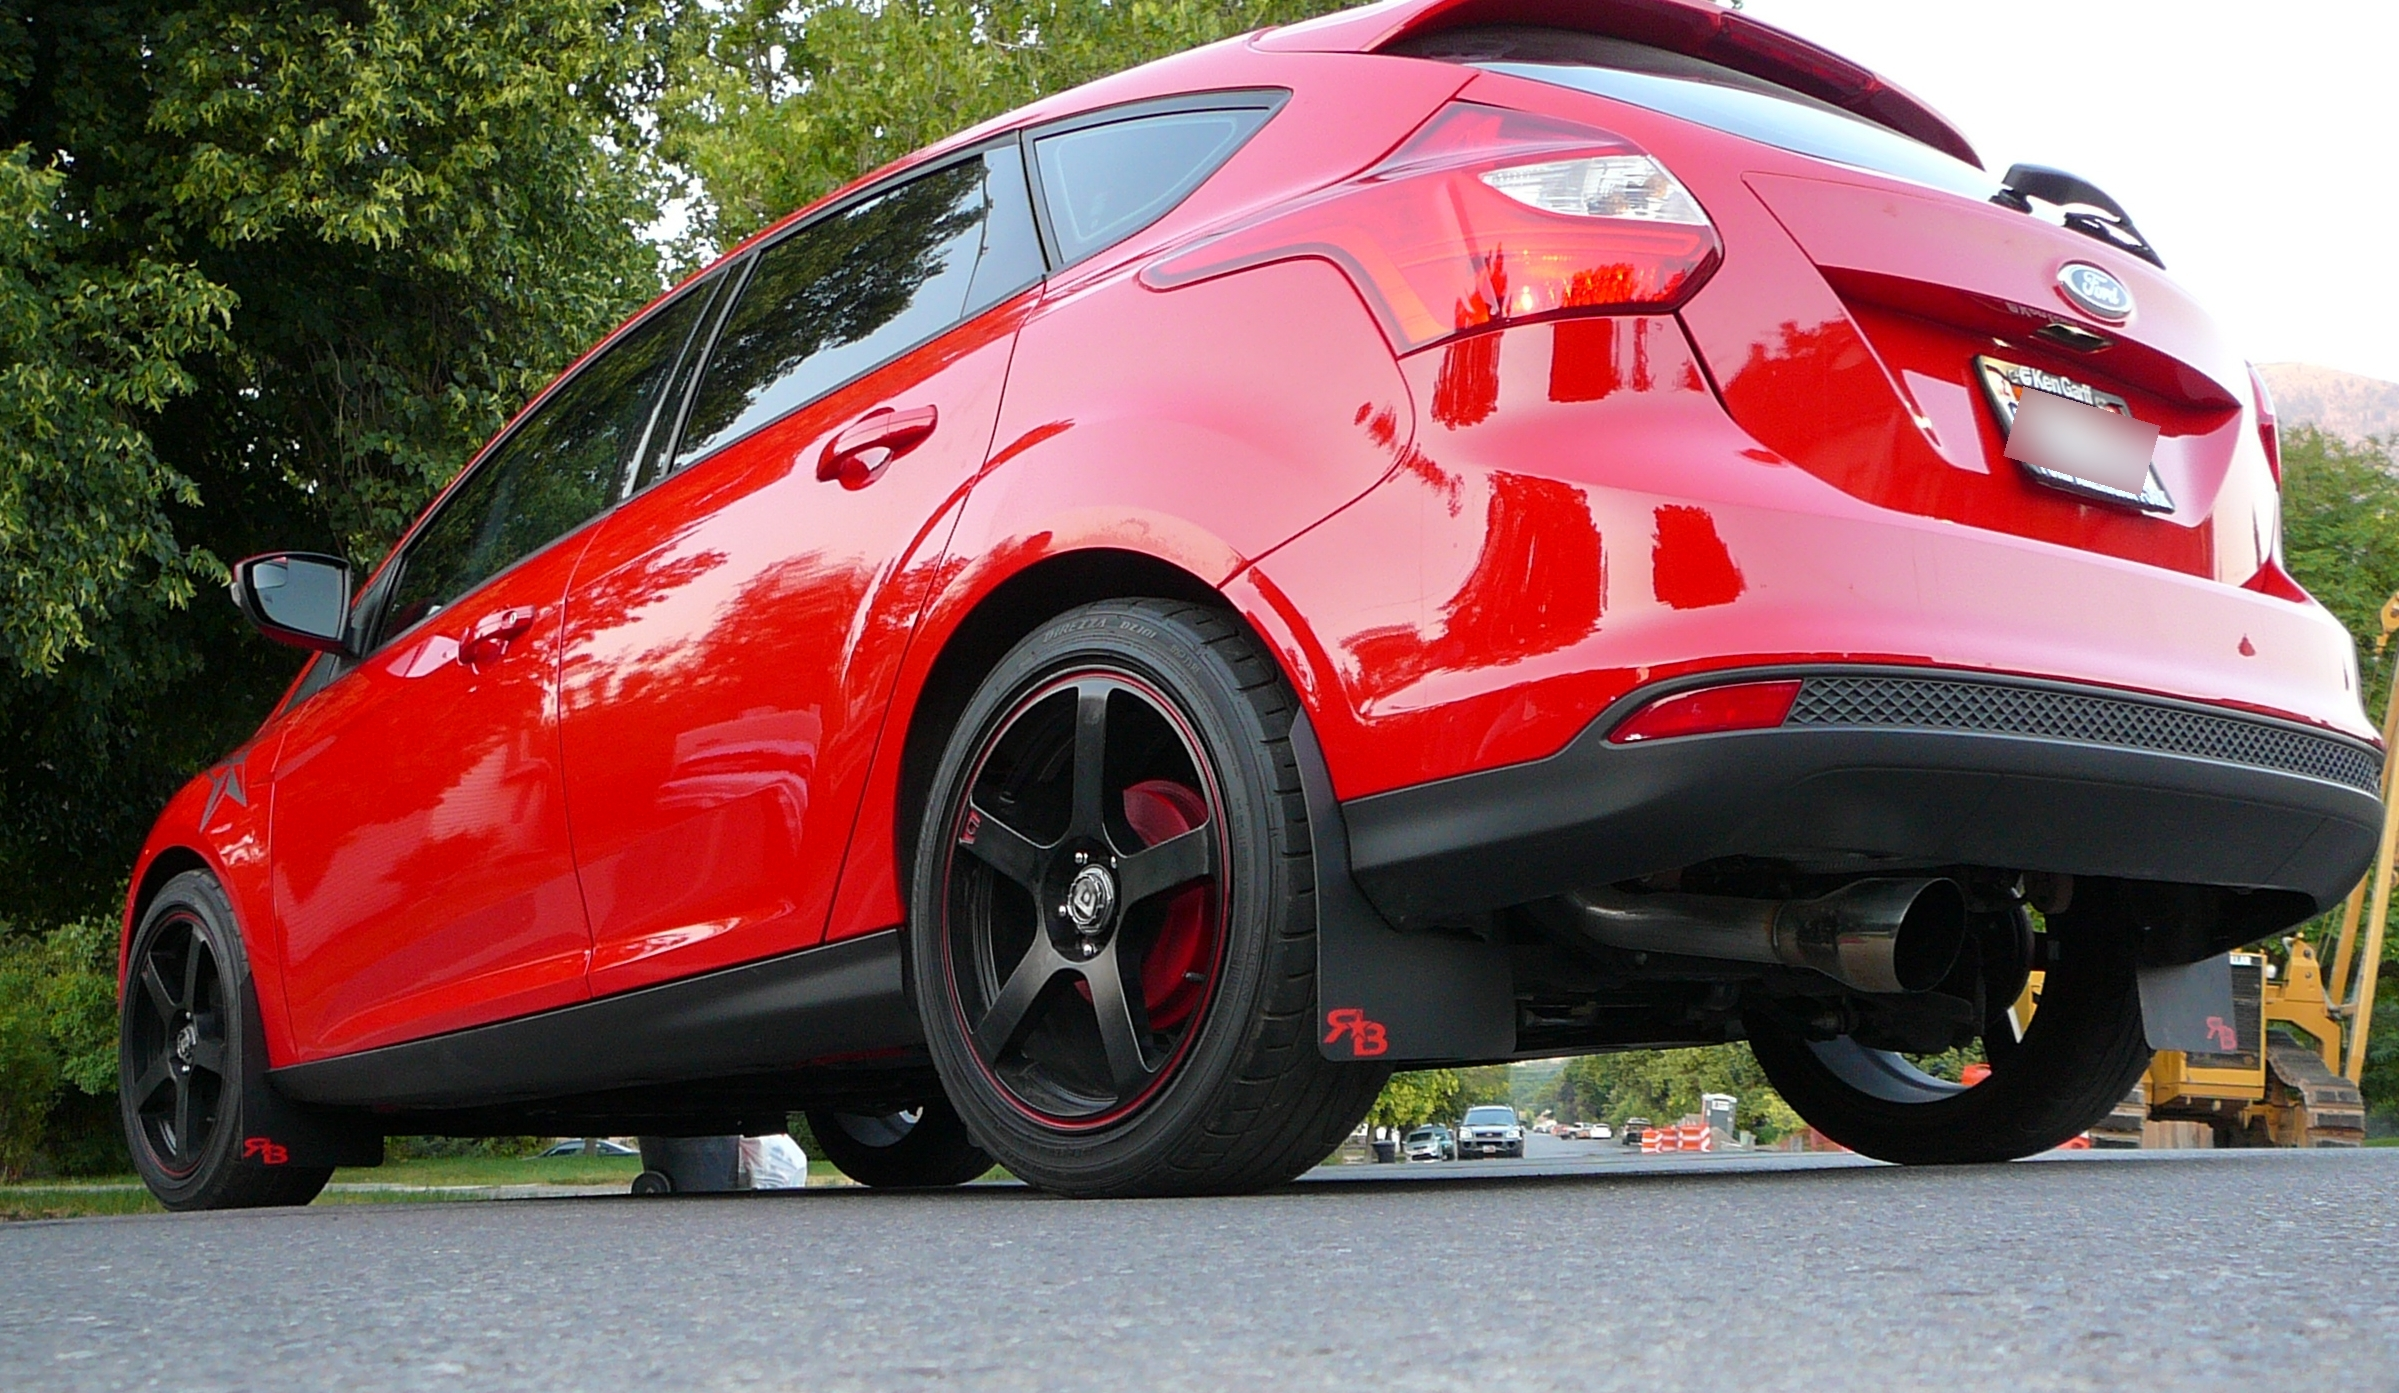 Red Rokblokz Mud Flaps Just Placed An Order